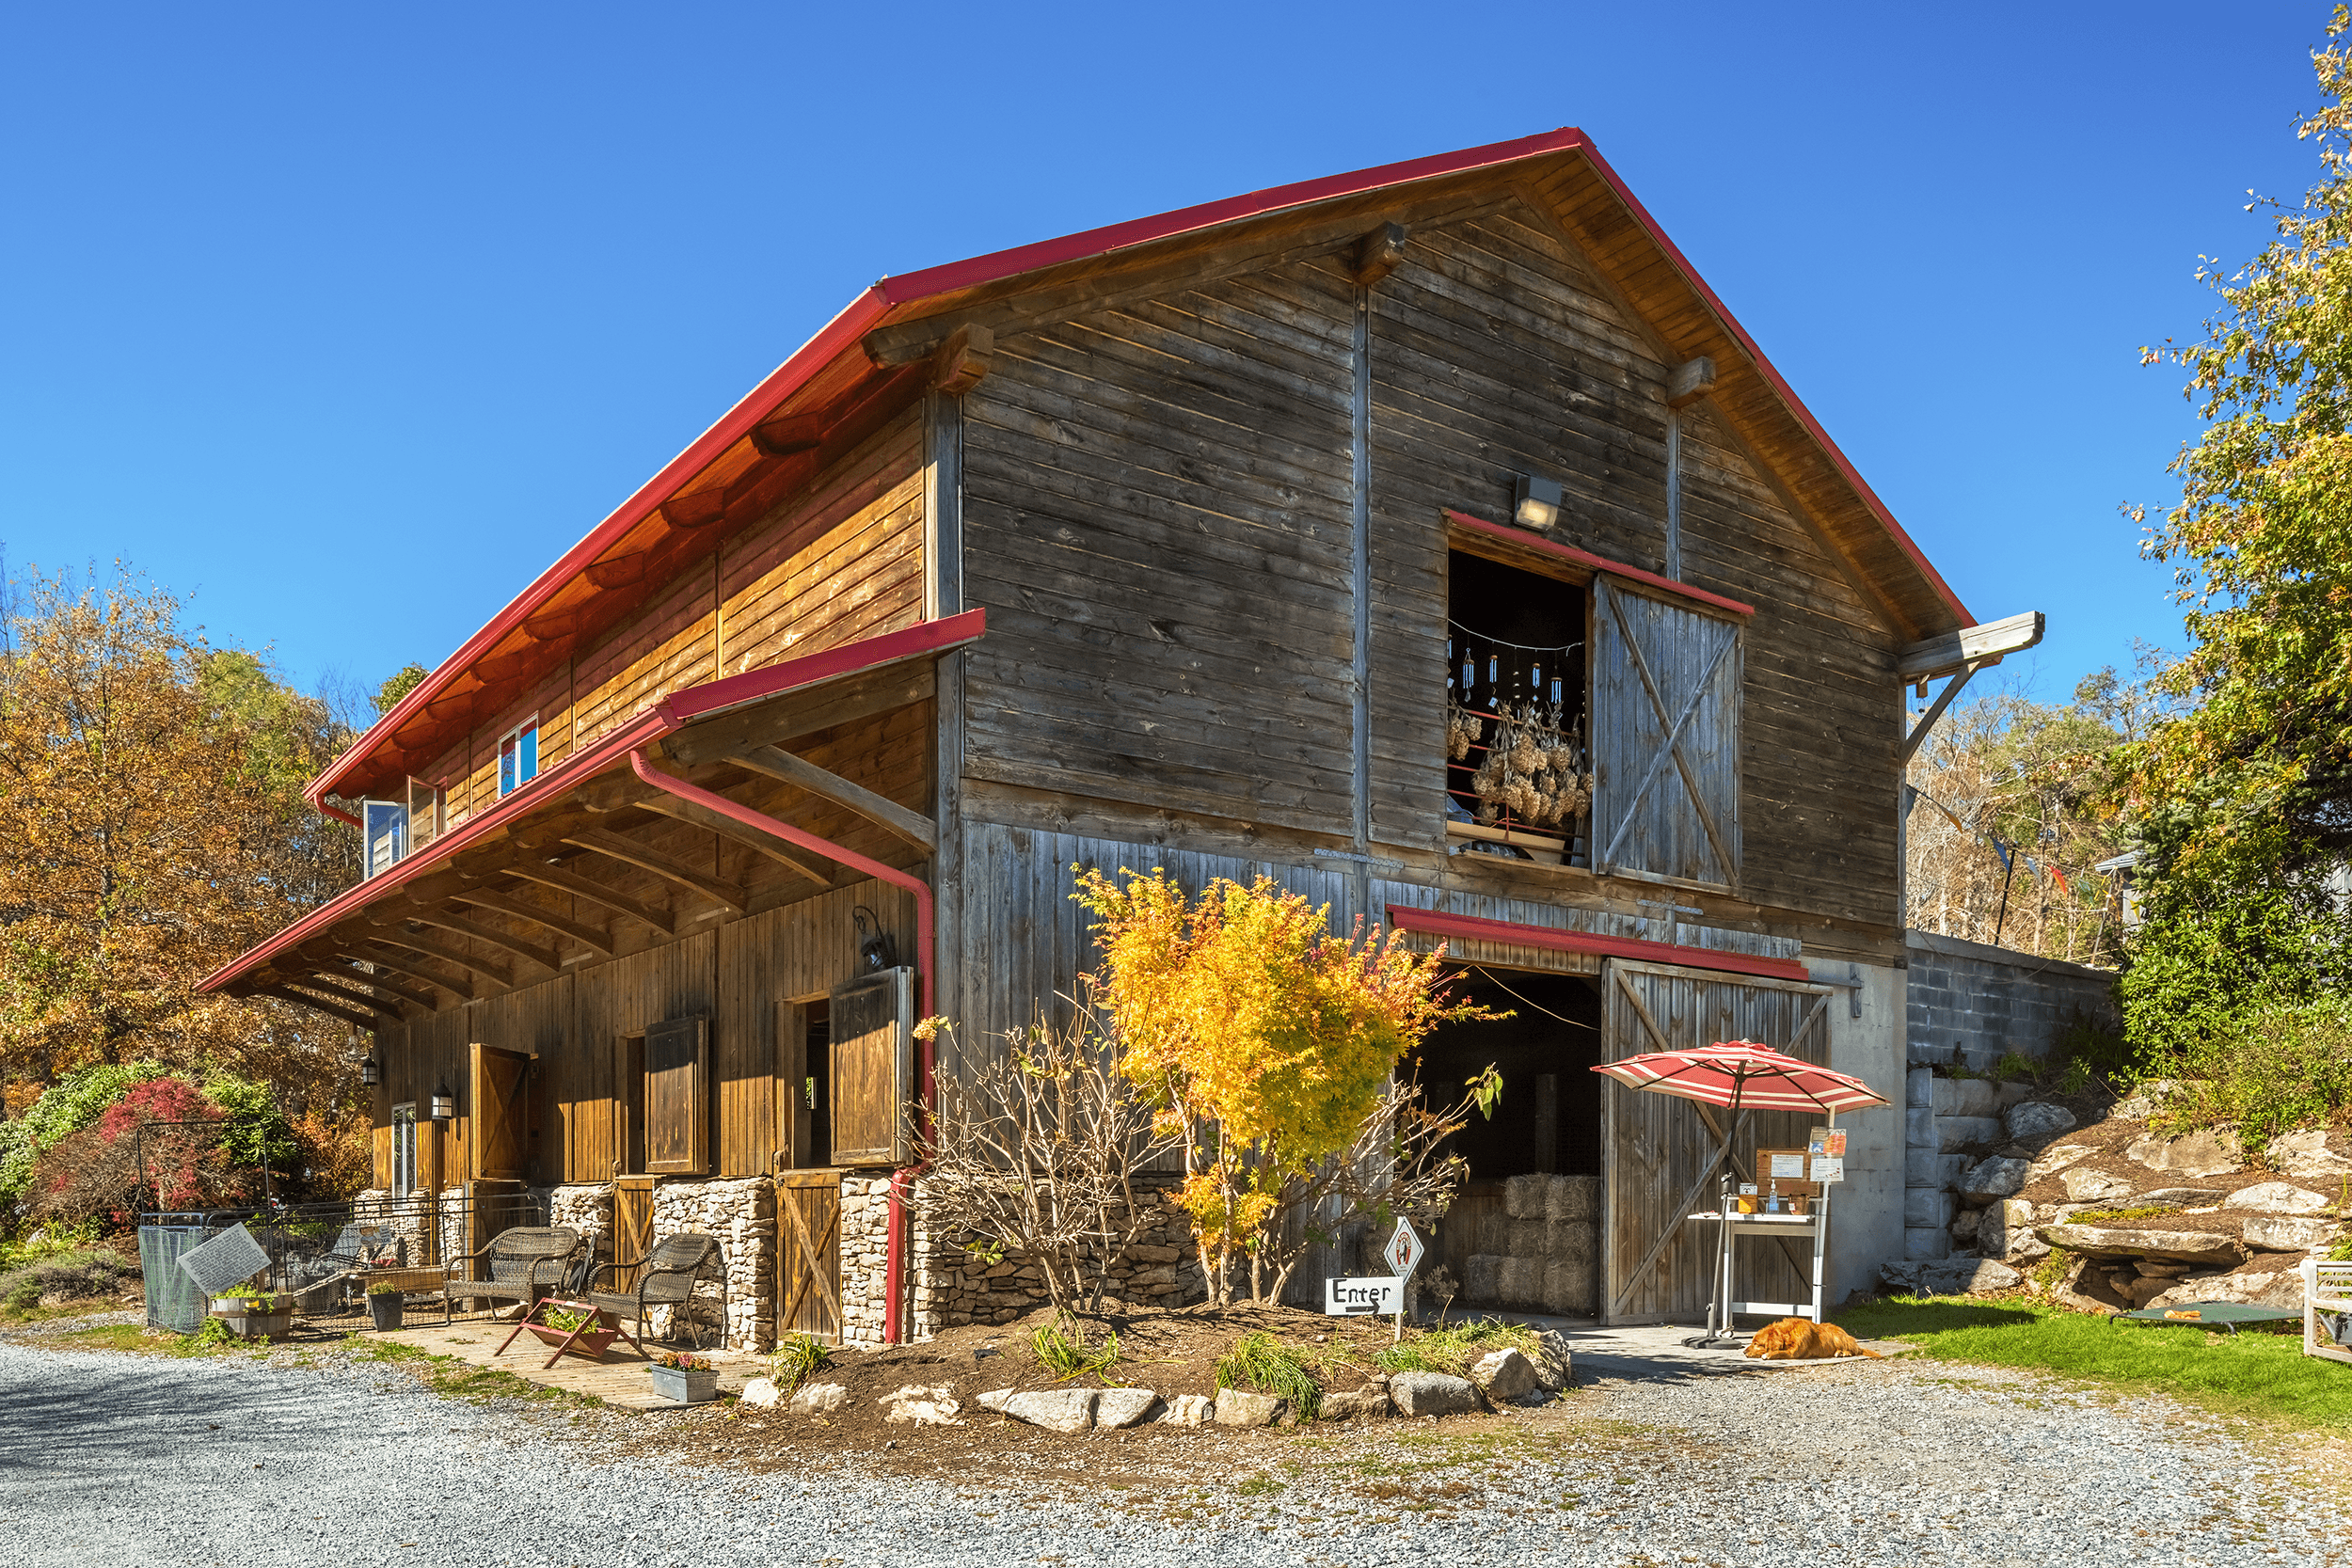 When you arrive, you can park your car in the designated parking spots across from the barn. The store on the second floor is accessible by stairs from the inside or by walking around the building to the back.